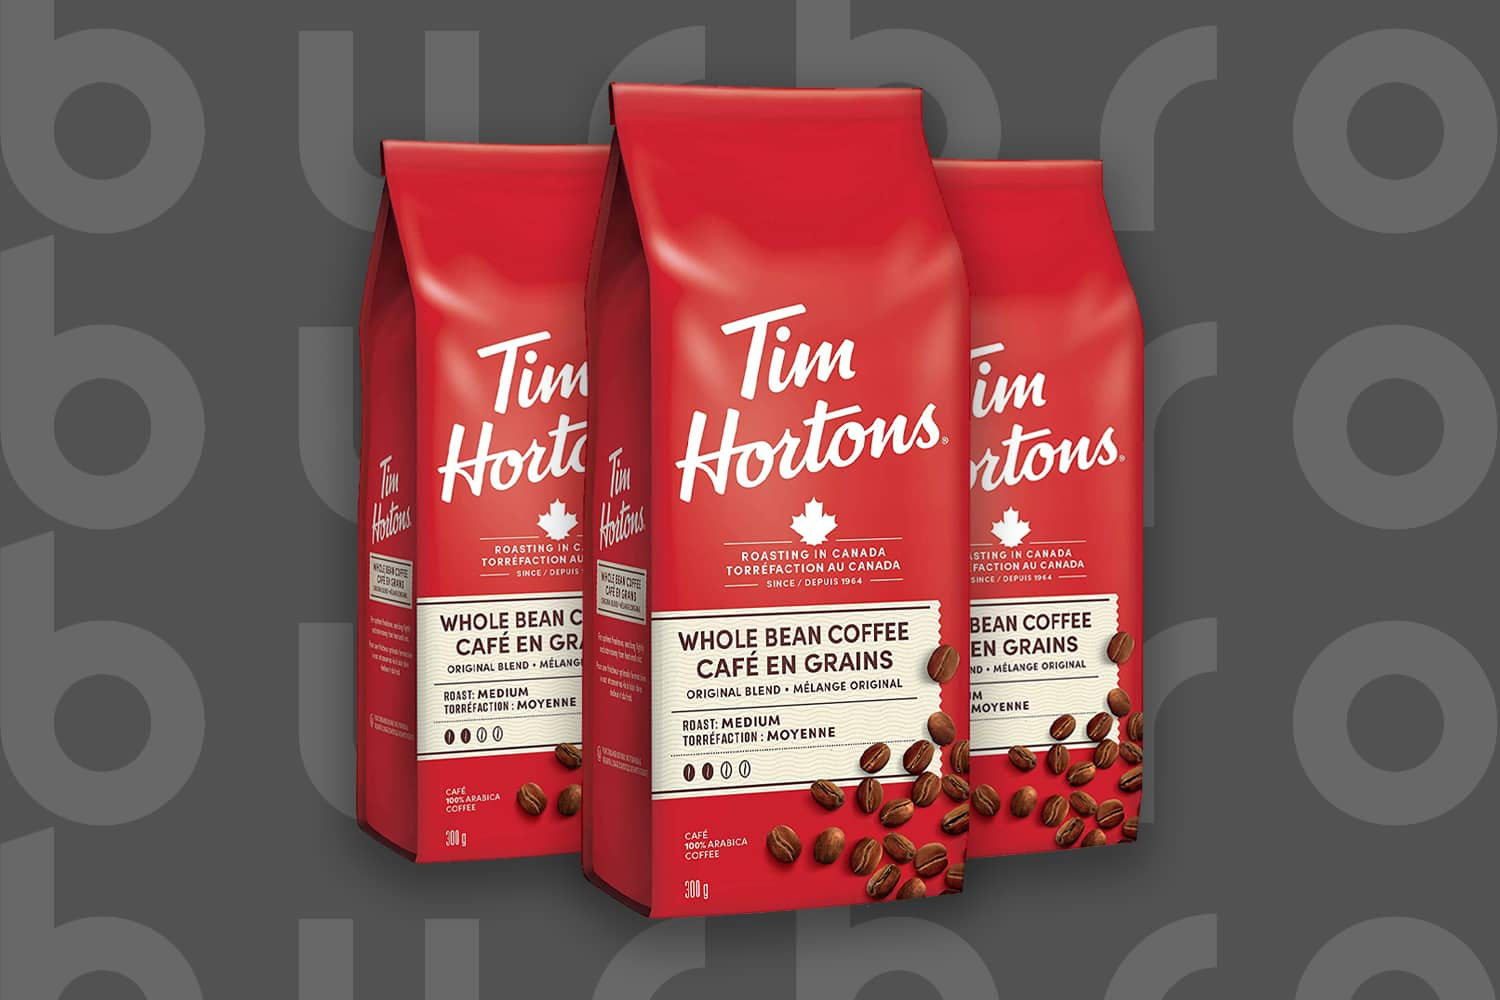 This is the cover photo for our Best Budget Coffee Beans article. It features 3 red and white bags of Tim Horton's whole bean medium roast coffee, overlaid on a dark grey background with embossed Burbro logo.